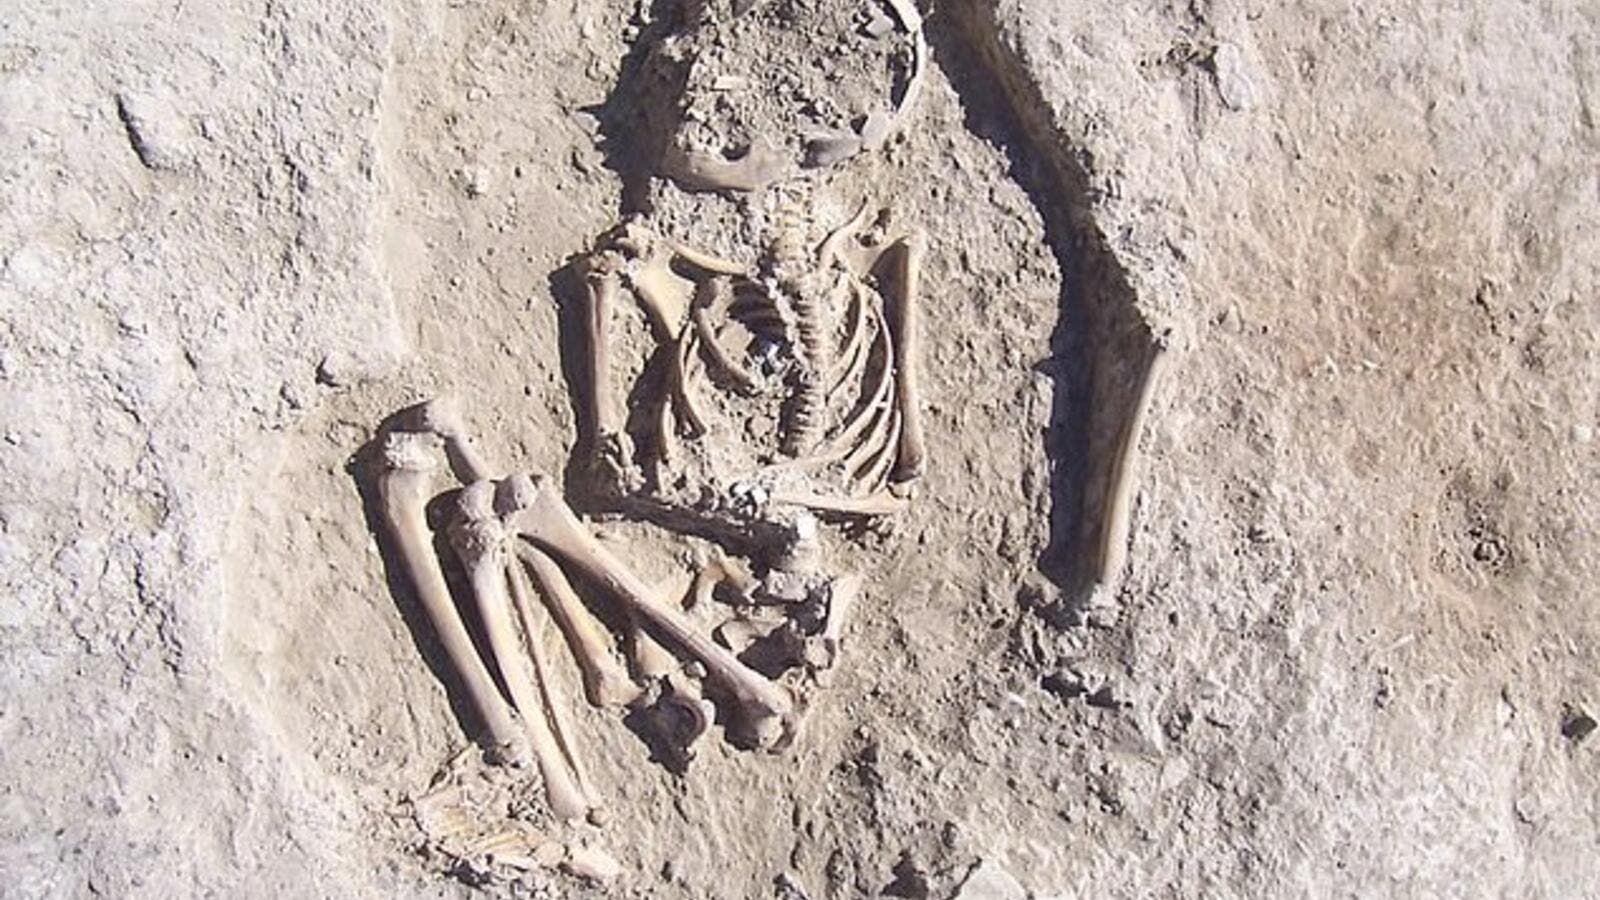 Anthropologists believe the bones belonged to a six-year-old who most likely died of trauma in the 4th millennium BC. (Daily Mail)